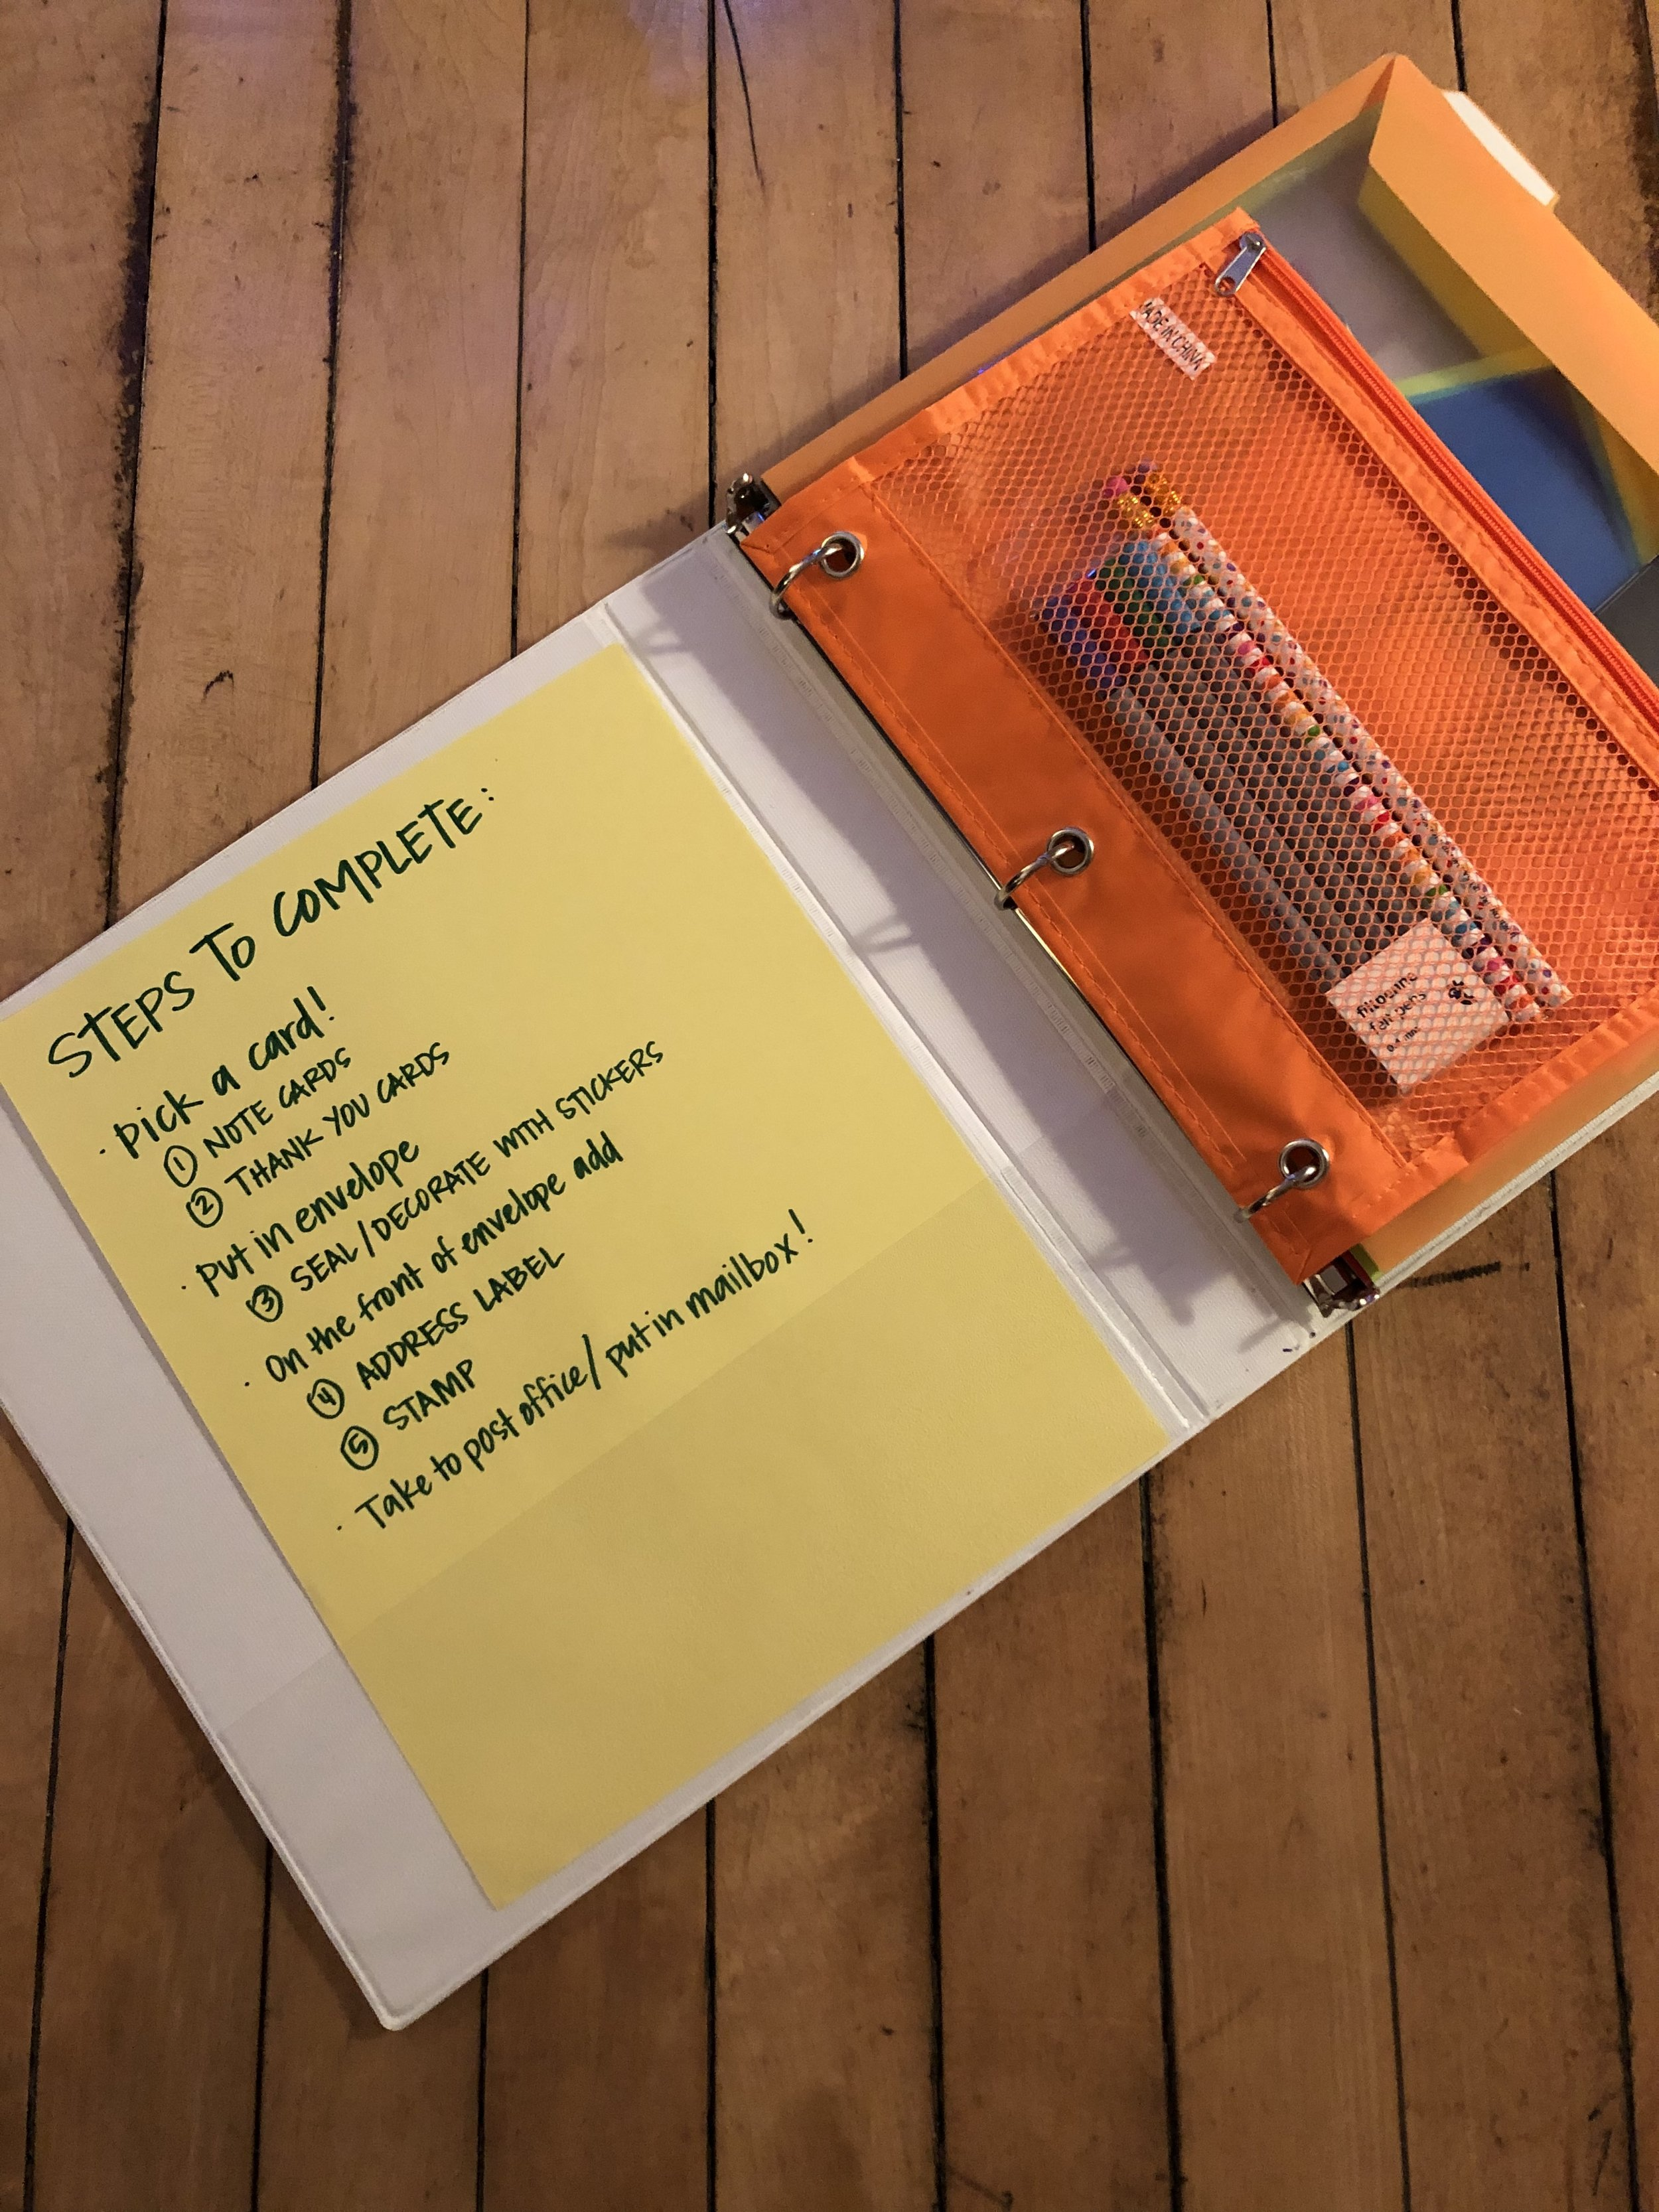 The directions page listed the steps to complete, with the corresponding numbered envelope in the binder. A zippered pouch kept some fancy pens and pencils handy.